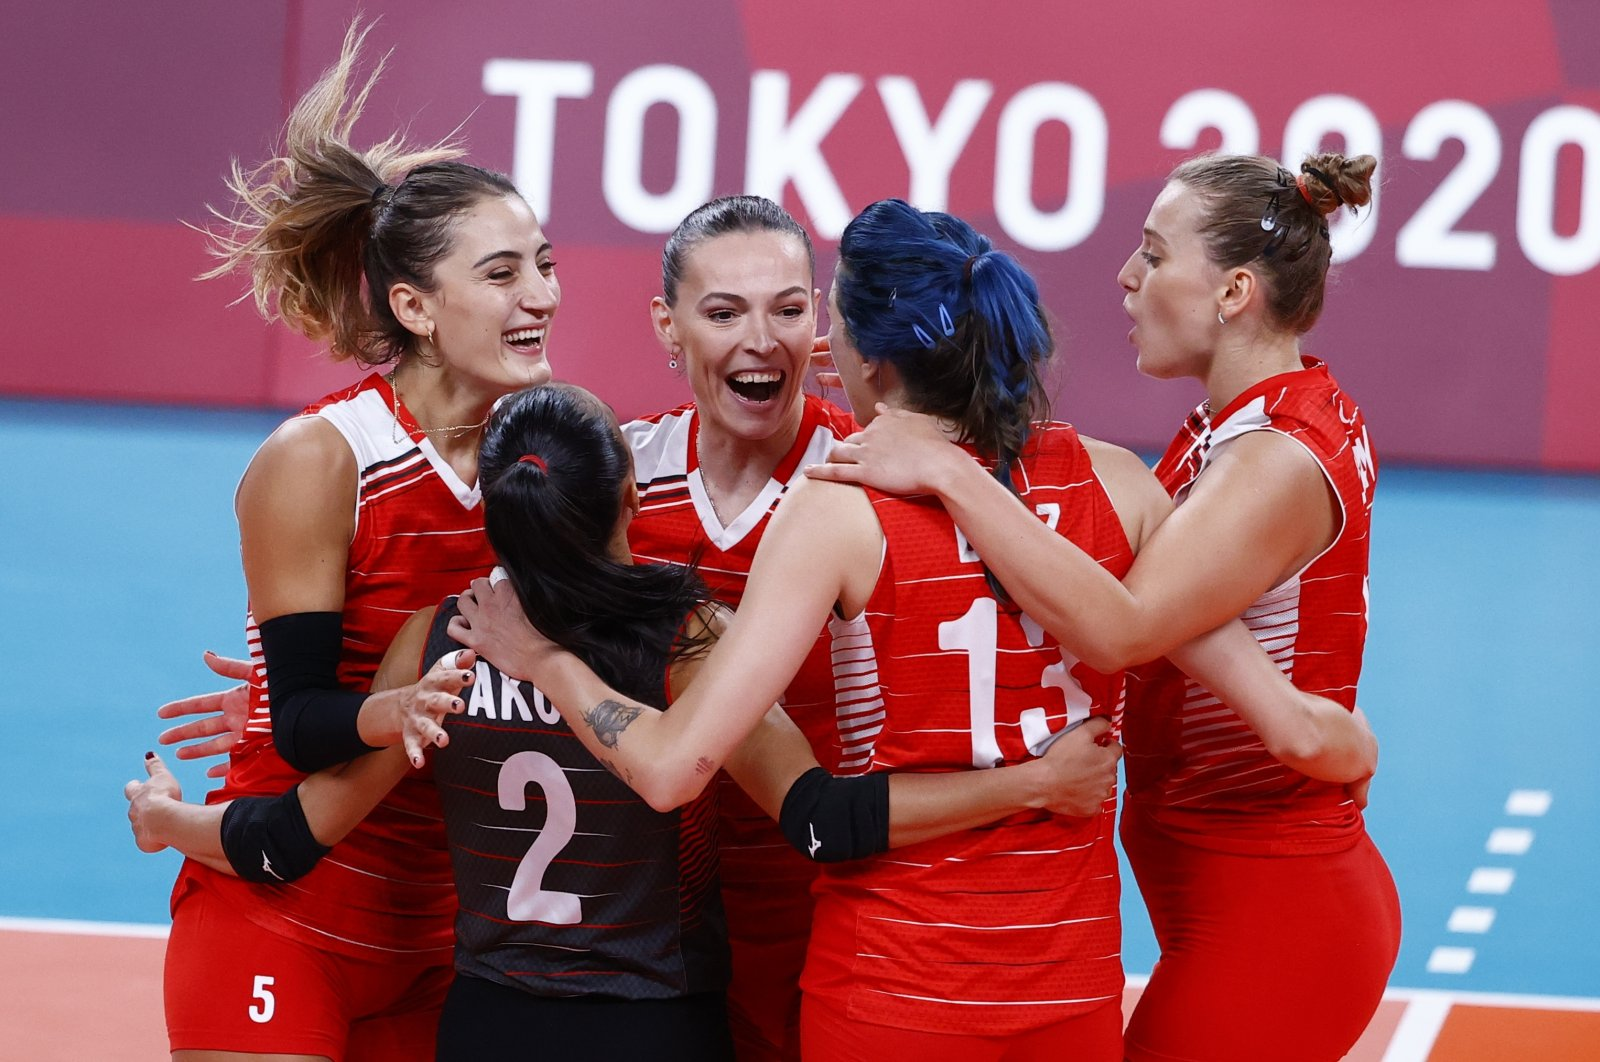 Turkey women's volleyball team players celebrate during their Tokyo 2020 Olympics women's quarterfinal games at Ariake Arena, Tokyo, Japan, Aug. 4, 2021. (Reuters Photo)